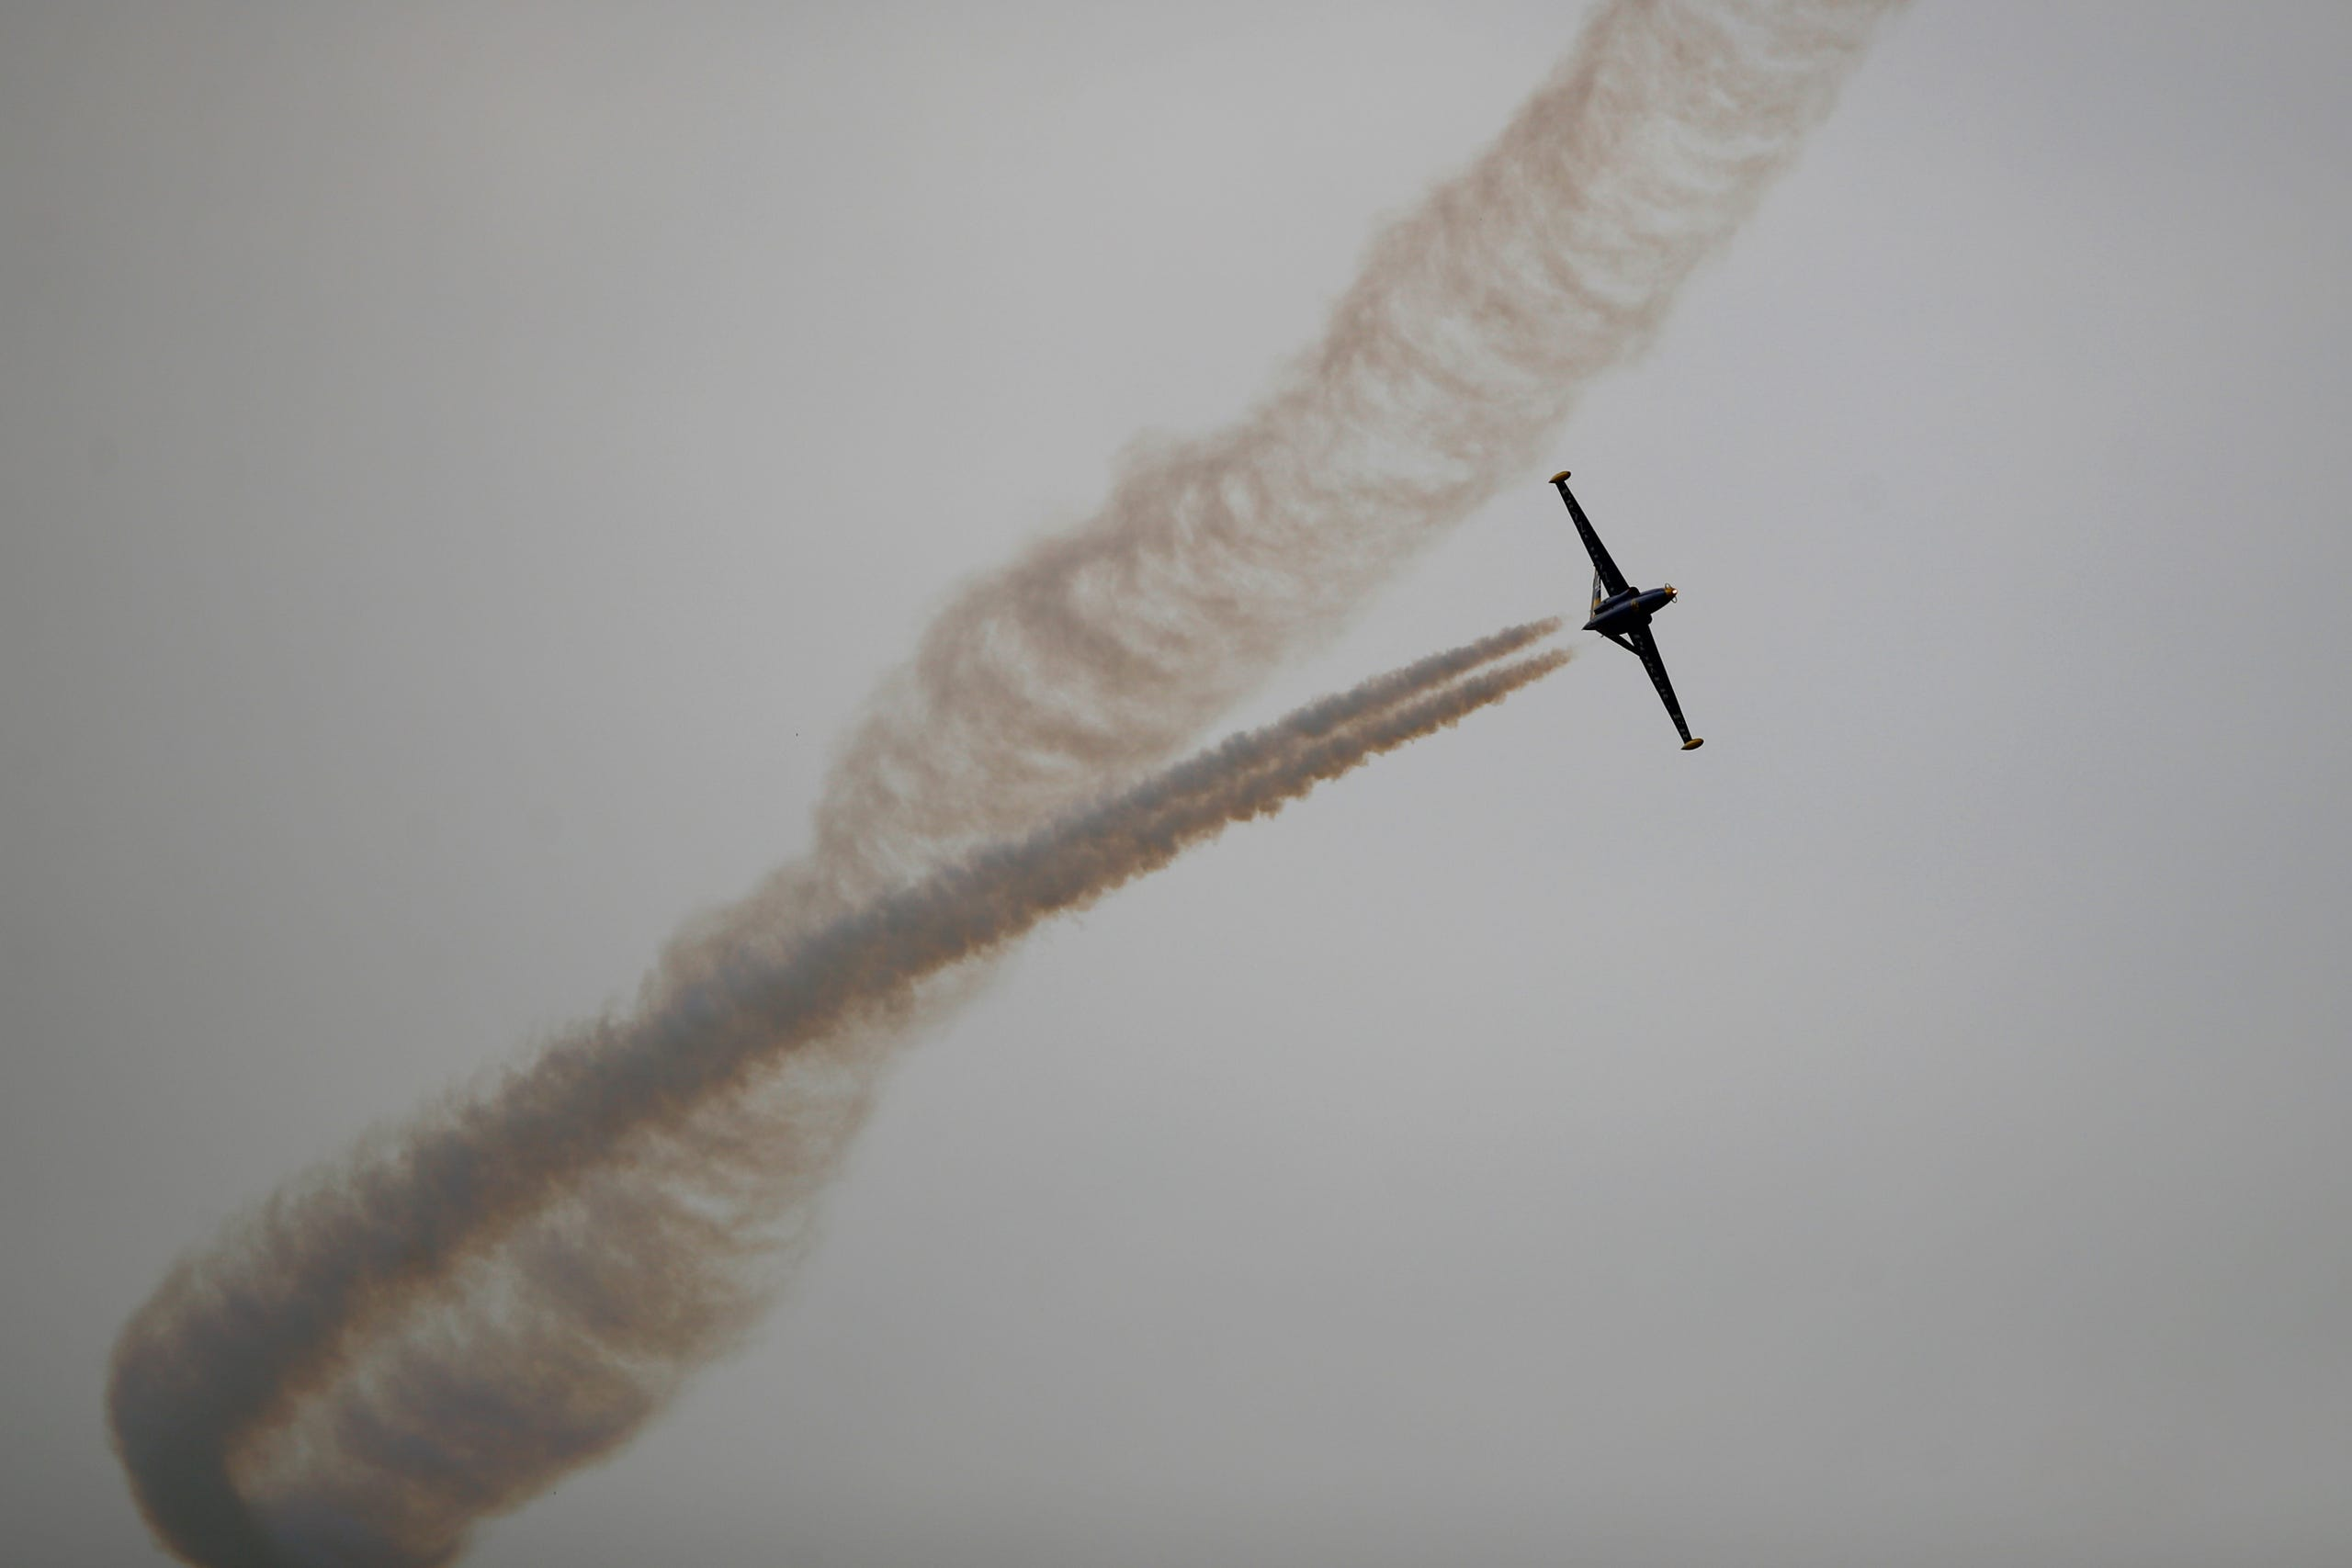 The Fouga Magister performs a demonstration flight at Paris Air Show, in Le Bourget, north east of Paris, France, Tuesday, June 18, 2019. The world's aviation elite are gathering at the Paris Air Show with safety concerns on many minds after two crashes of the popular Boeing 737 Max. (AP Photo/ Francois Mori) ORG XMIT: XFM101